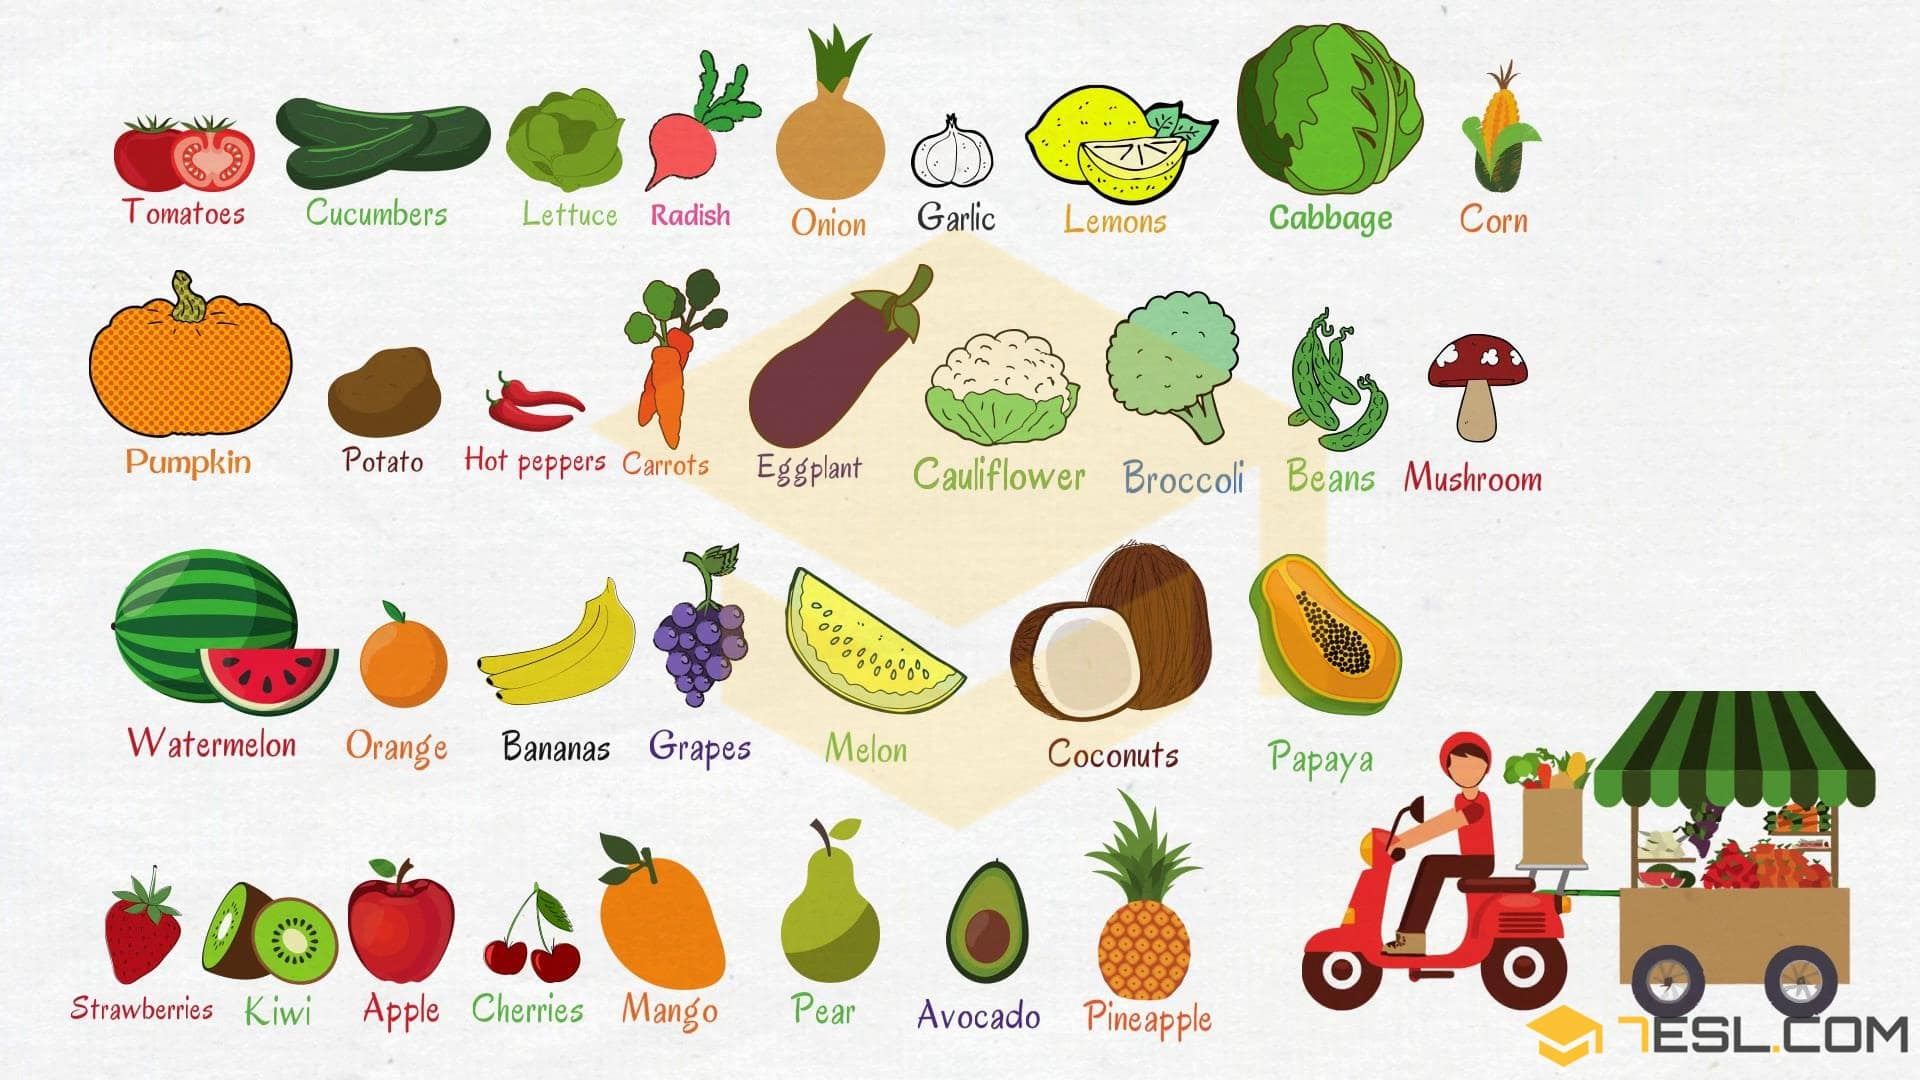 Fruits and Vegetables | Images